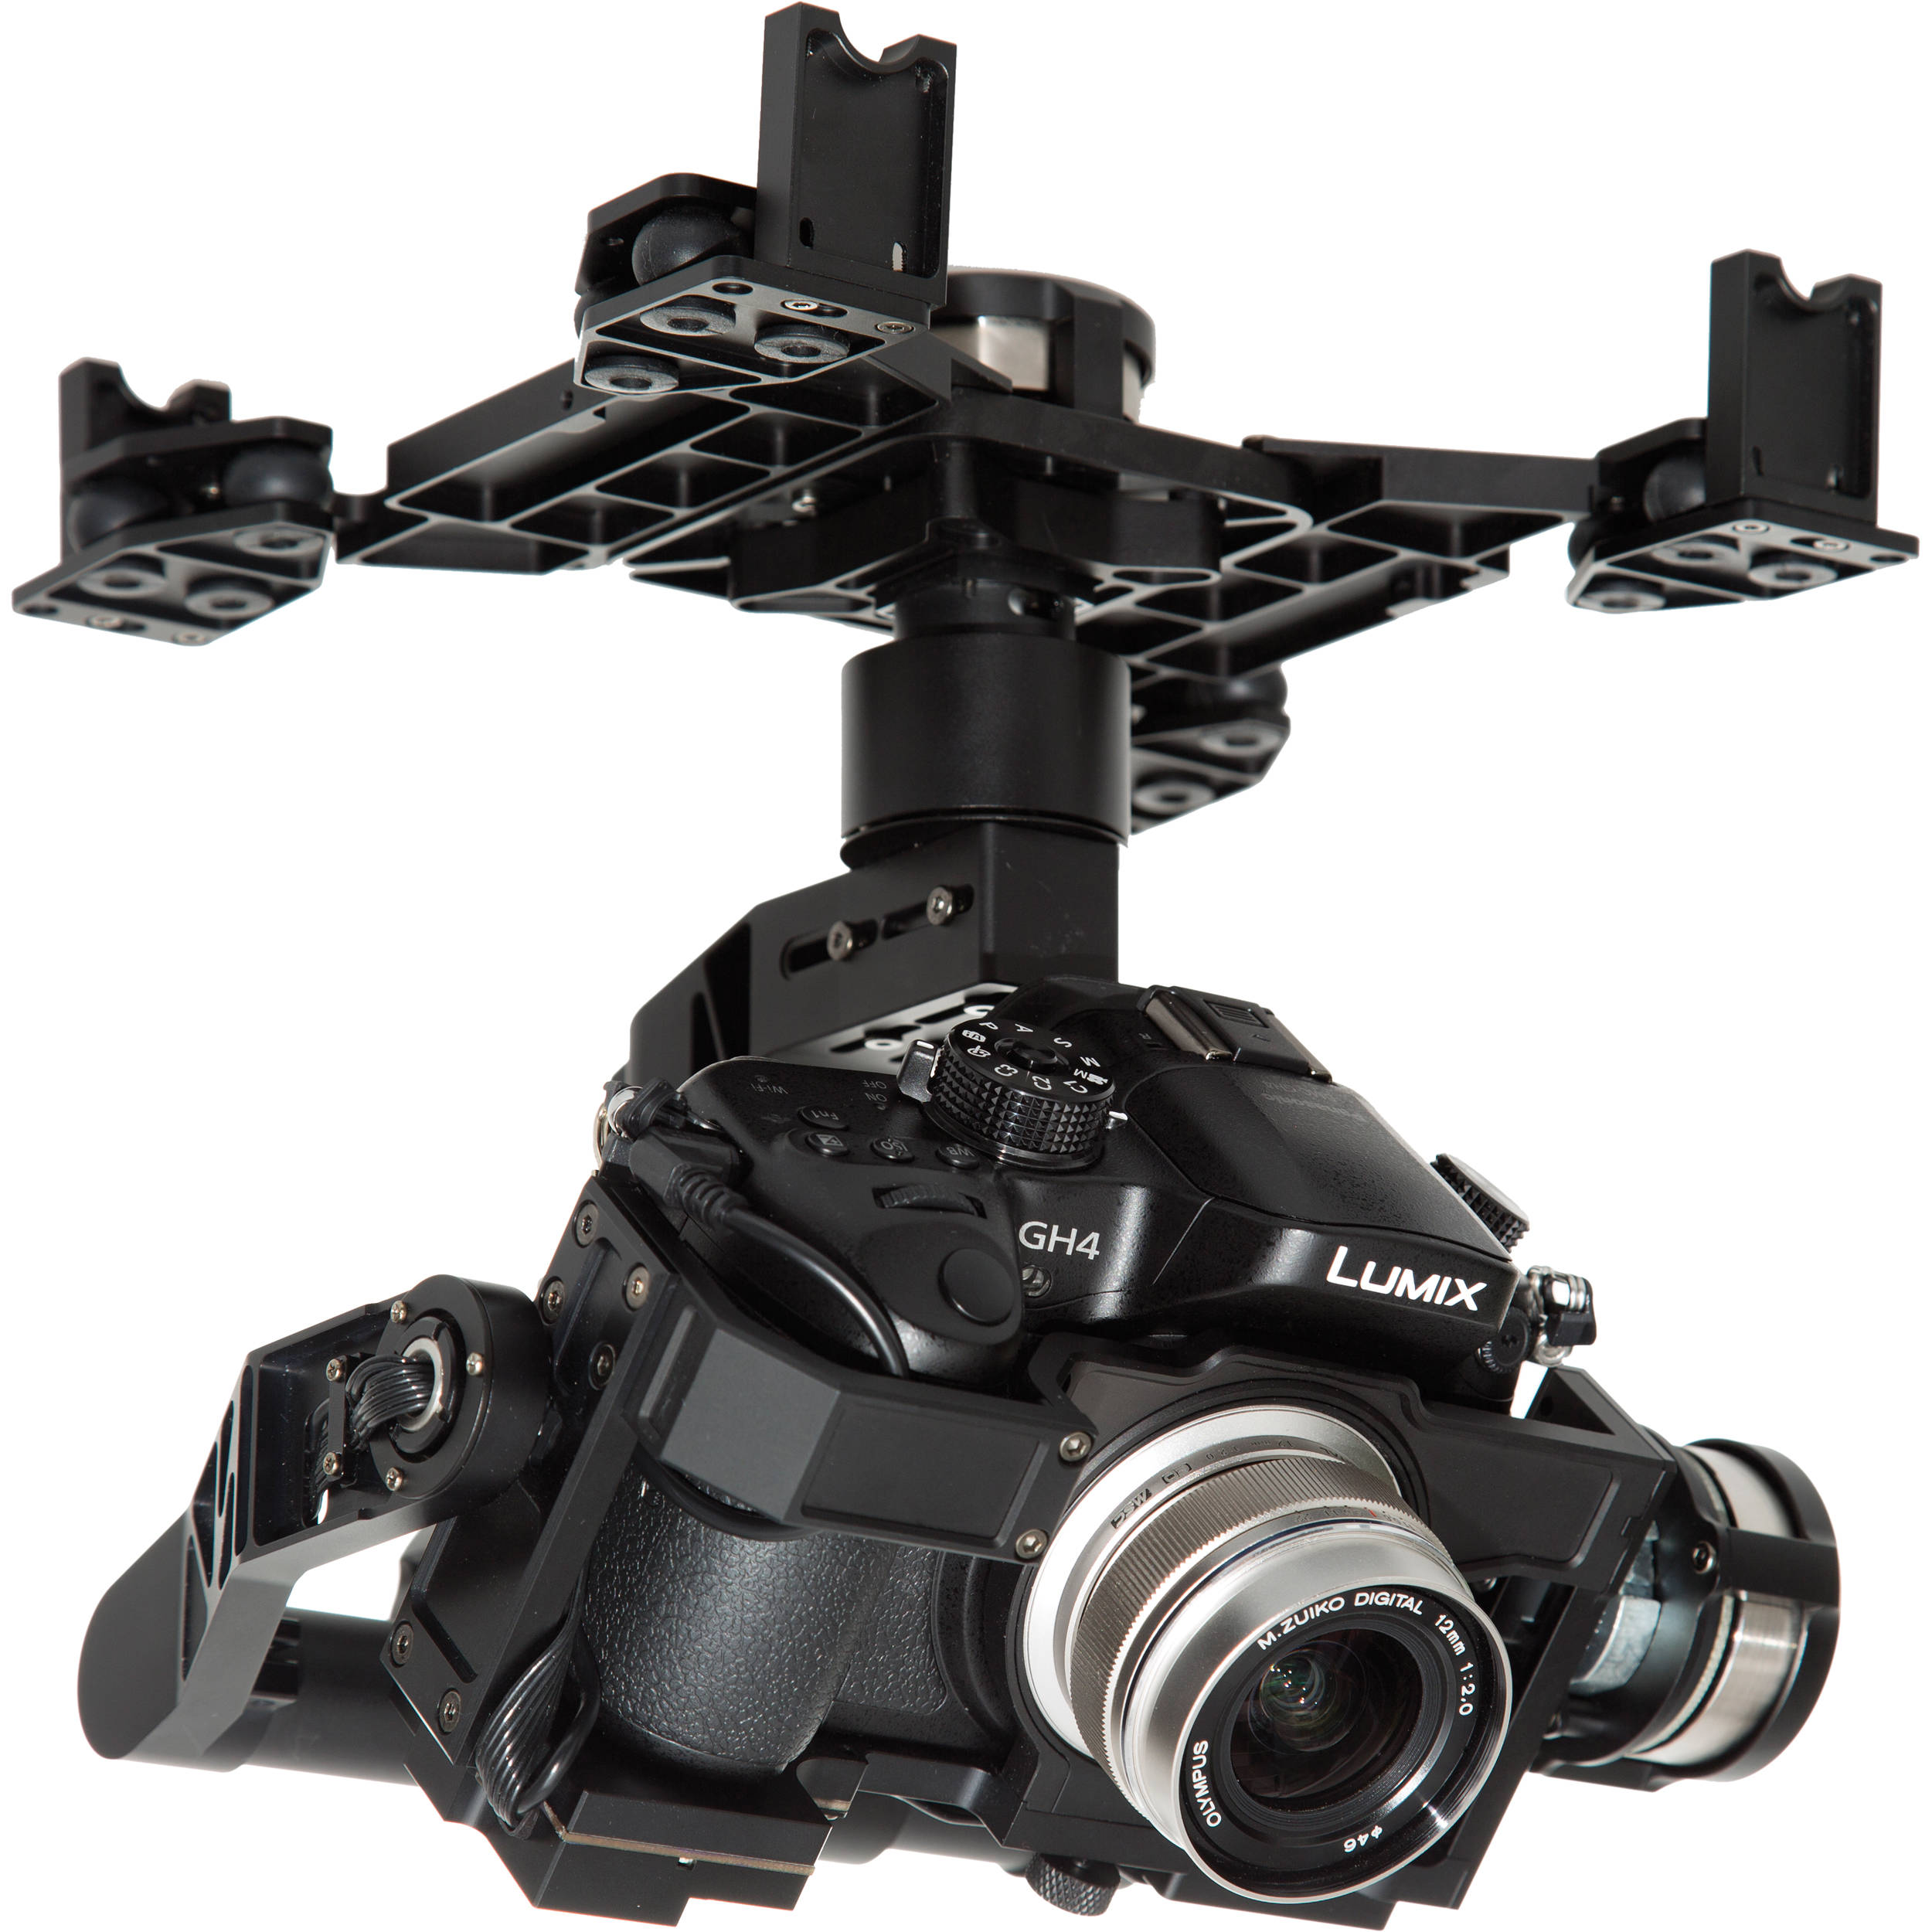 camera drone hd with Dji Z15 Gh4 Hd Zenmuse 3 Axis Gimbal For on Dji Mavic Air 4k Djis Portable Camera Drone Ever besides 4k Tvs Devices as well Dji z15 gh4 hd zenmuse 3 axis gimbal for furthermore Nikon D5 Camera Dslr Digital Review Body 4k Video Lens 8742 further Pb5000.